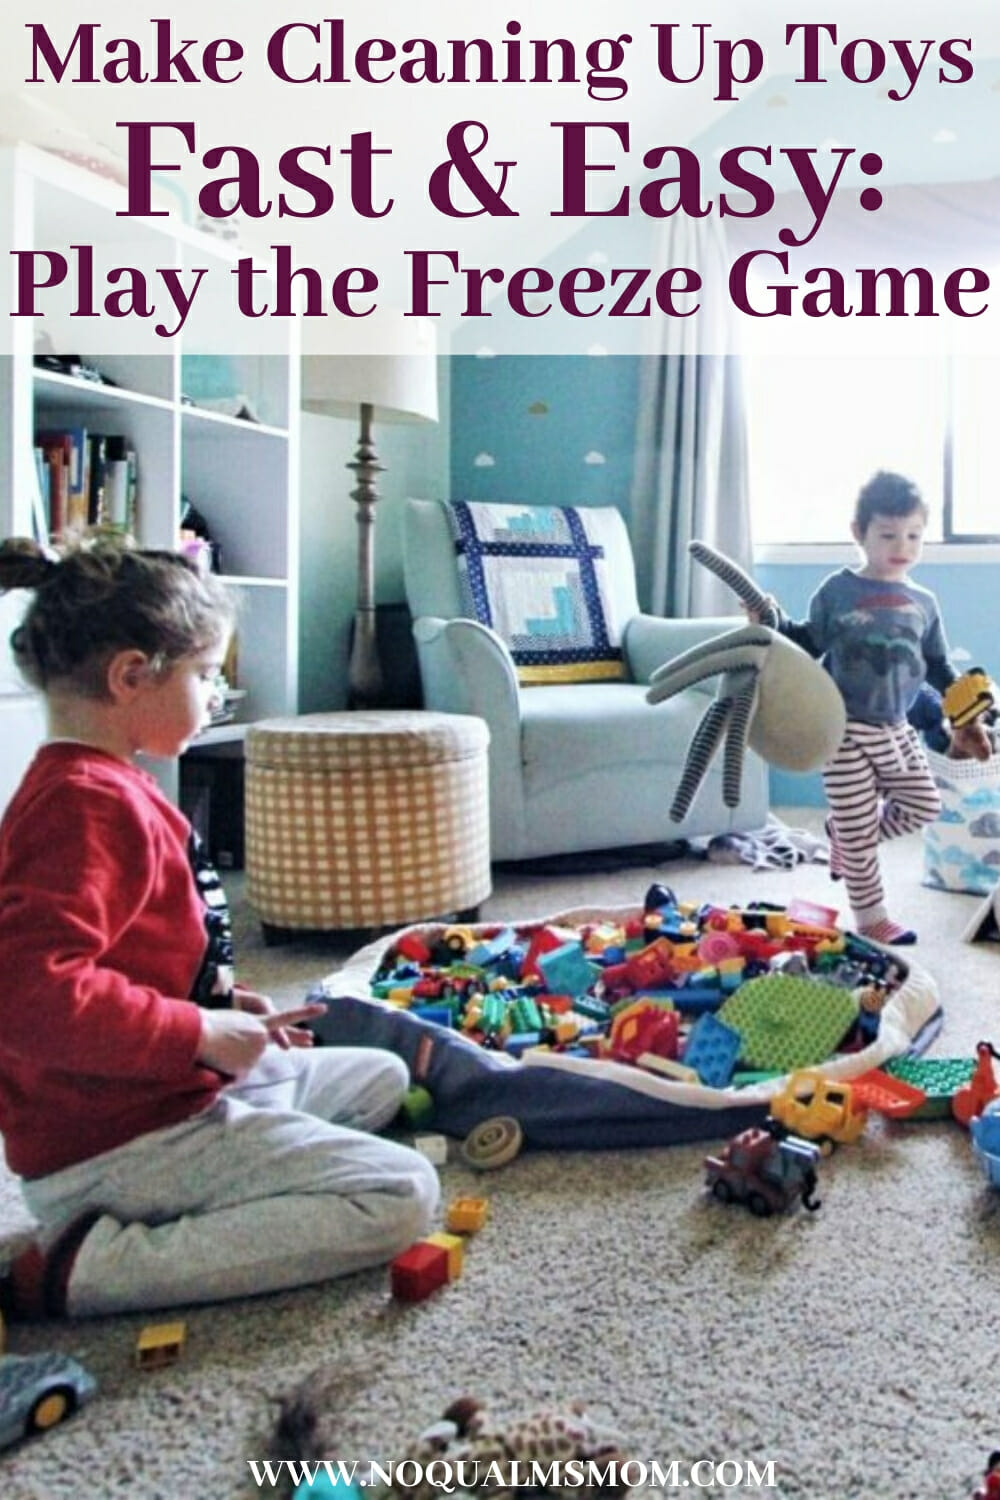 Make Cleaning Up Toys Easy & Fast: Play the Freeze Game